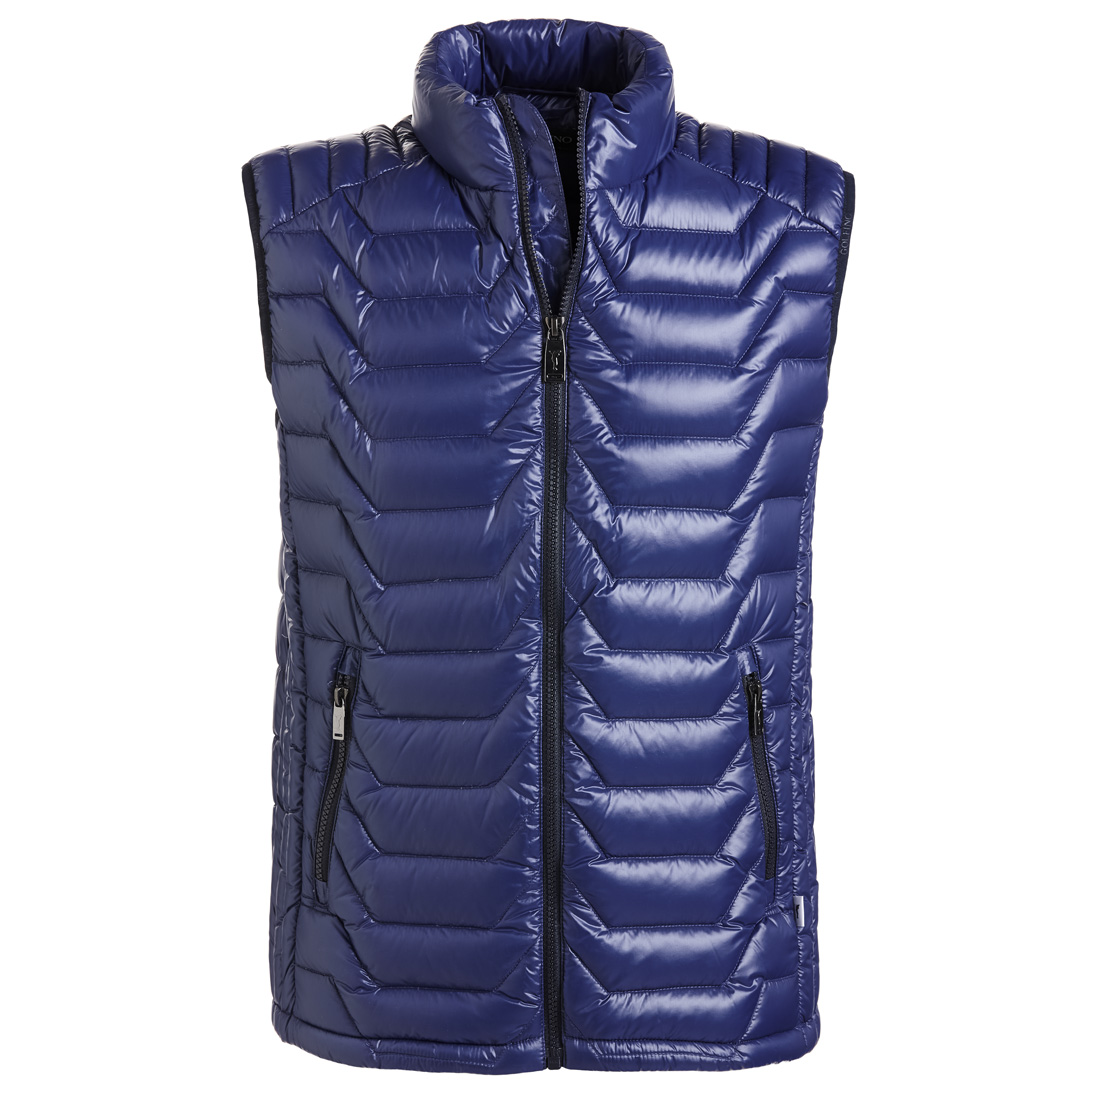 Lightweight men's down golf waistcoat with cold protection